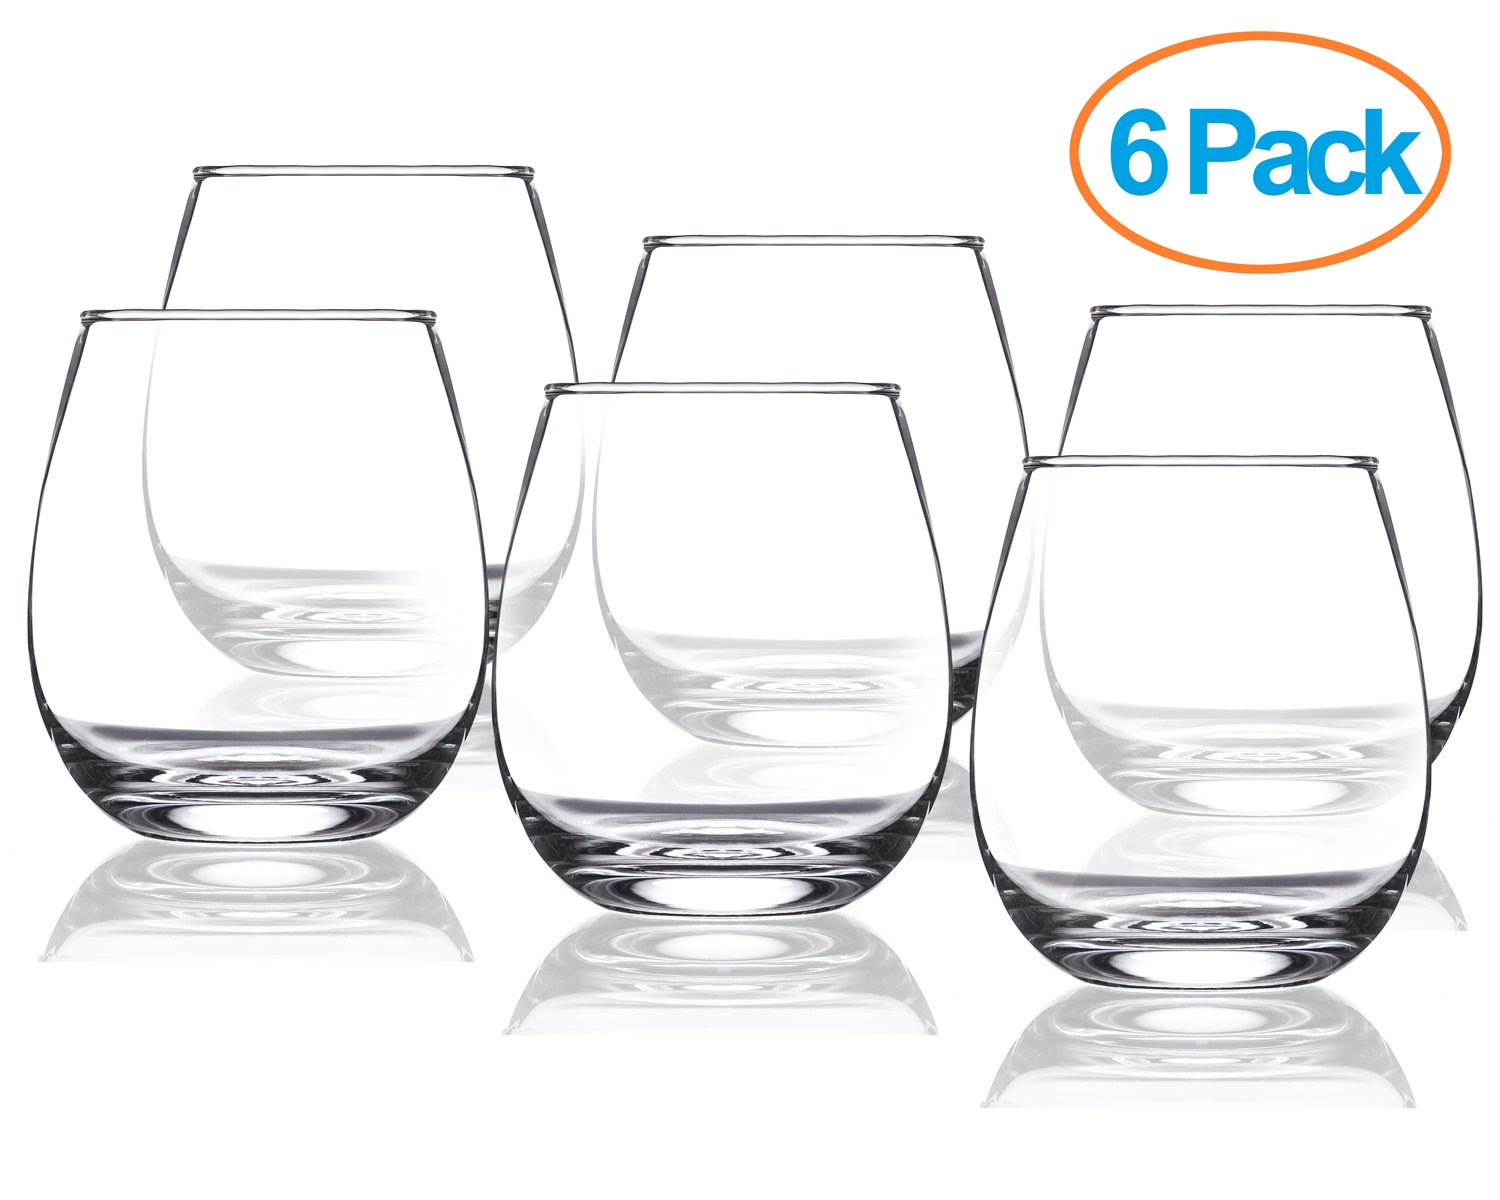 Chef's Star 15 Ounce Stemless Wine Glasses, Set of 6